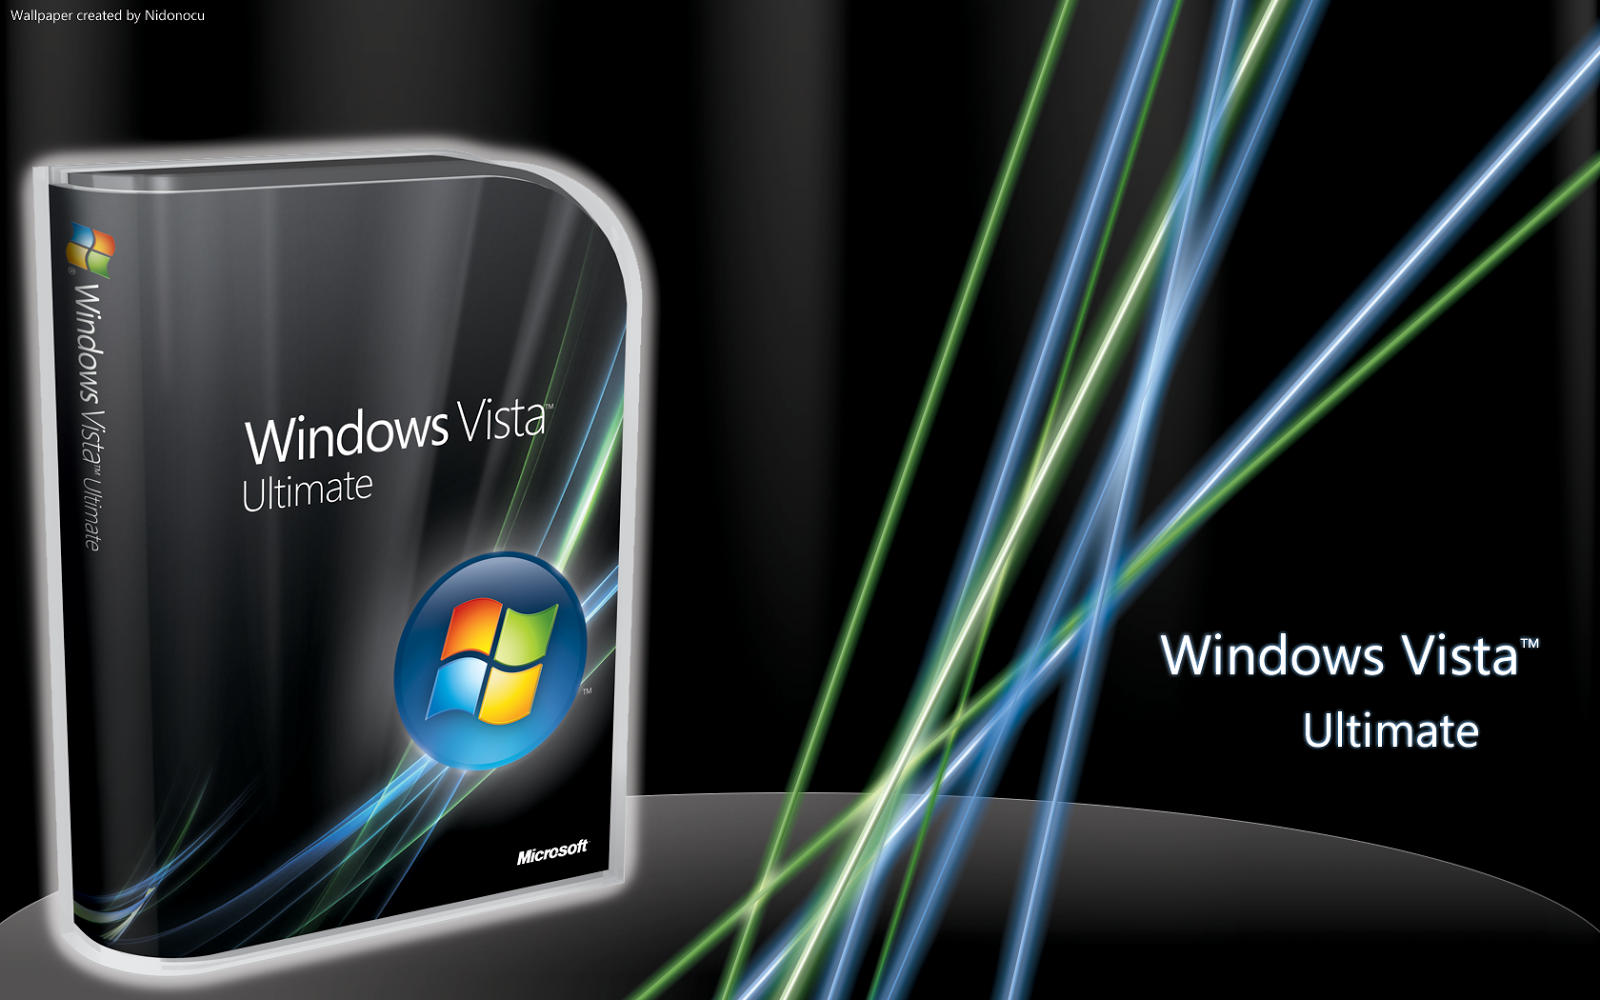 Microsoft windows vista ultimate 32bit activation key crack